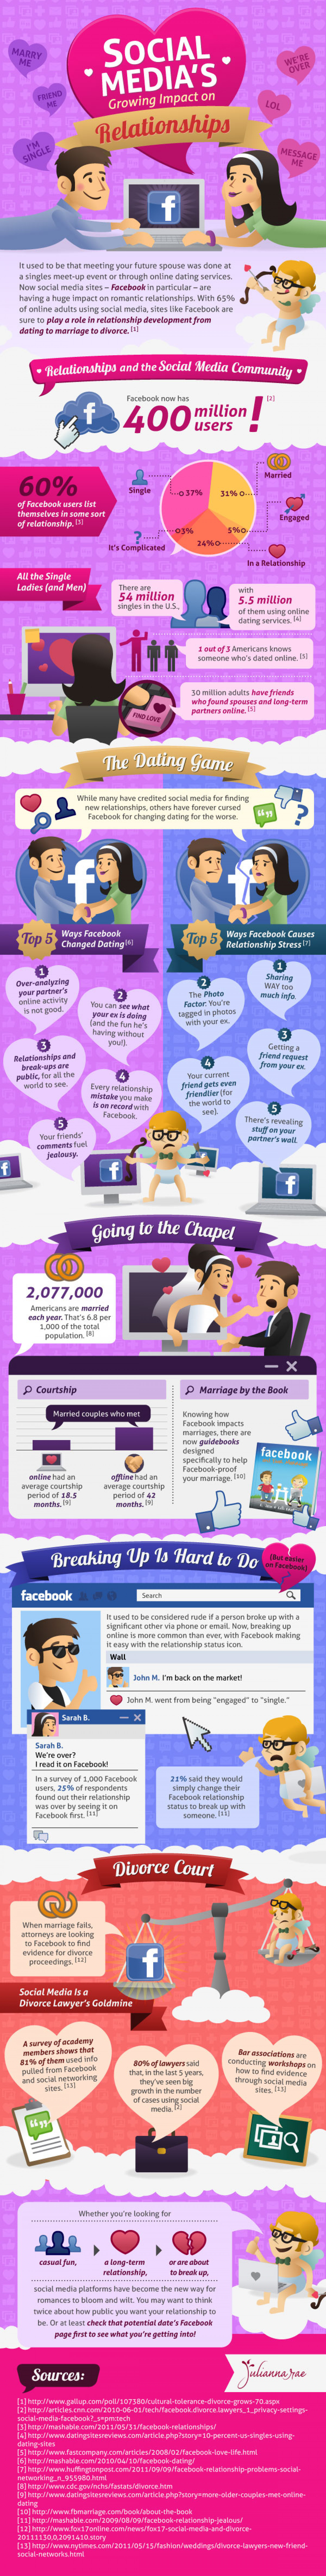 Social Media Has Changed The Relationship Game Infographic